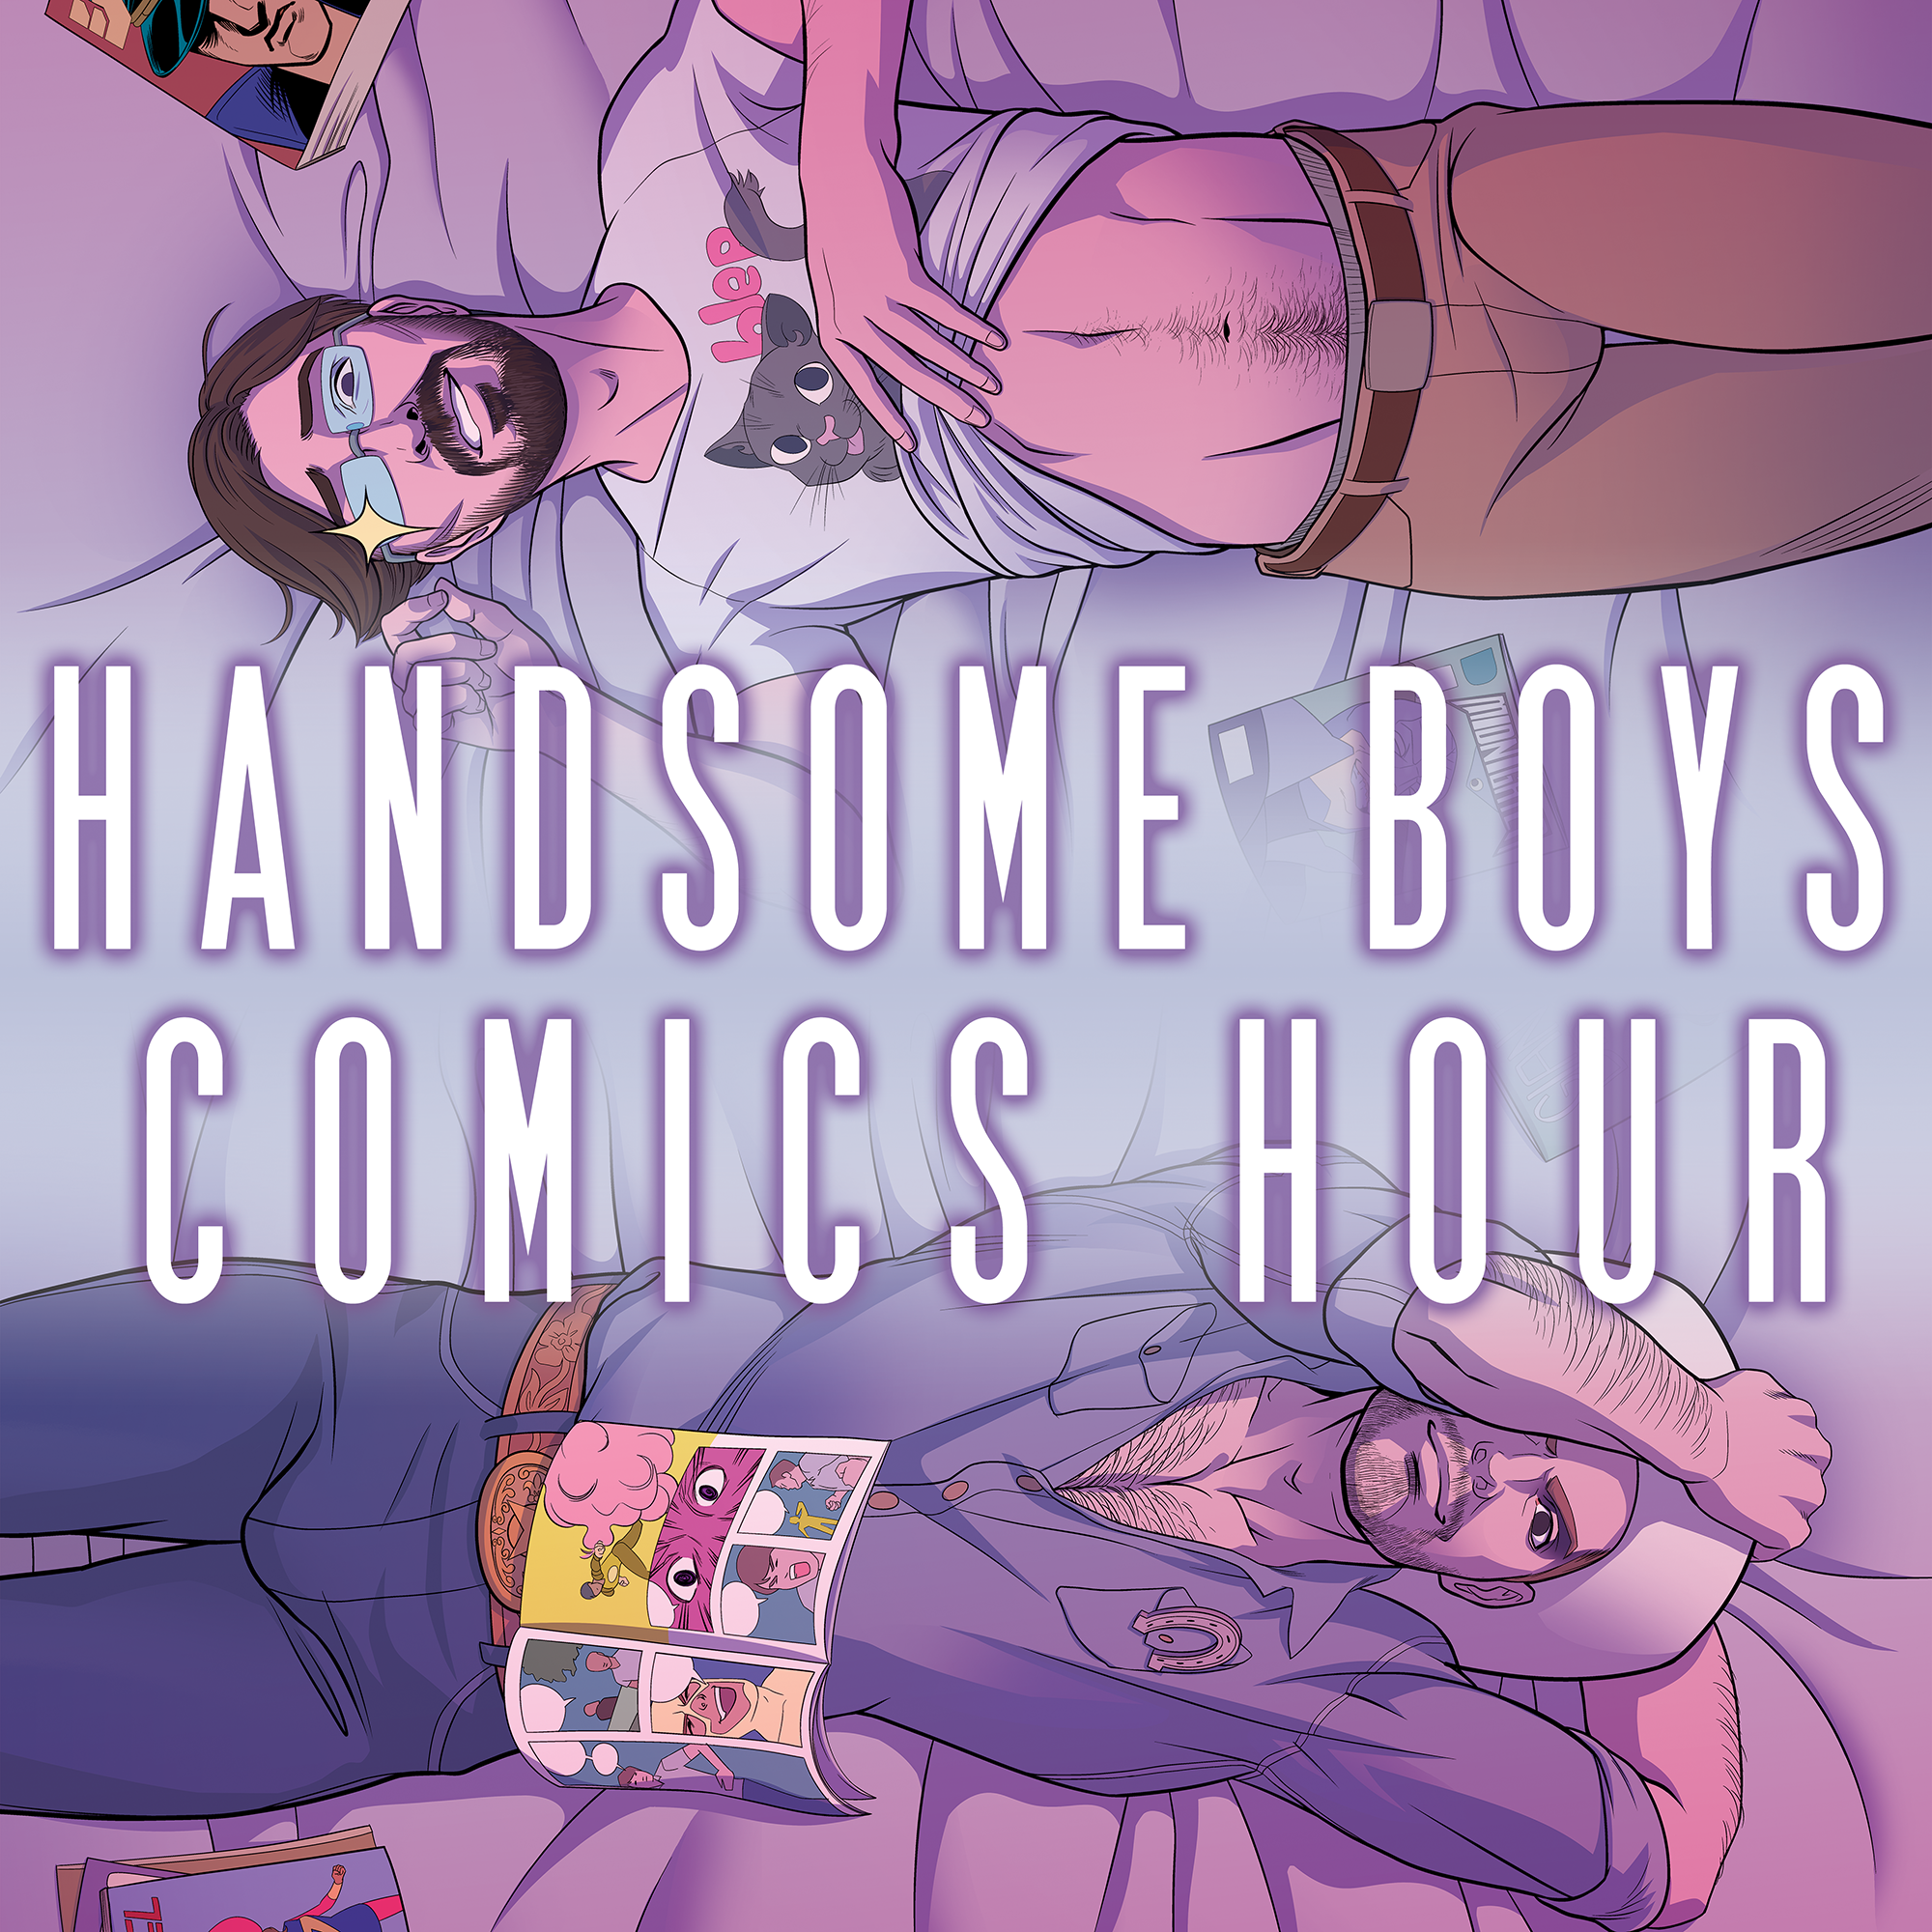 Handsome Boys Comics Hour